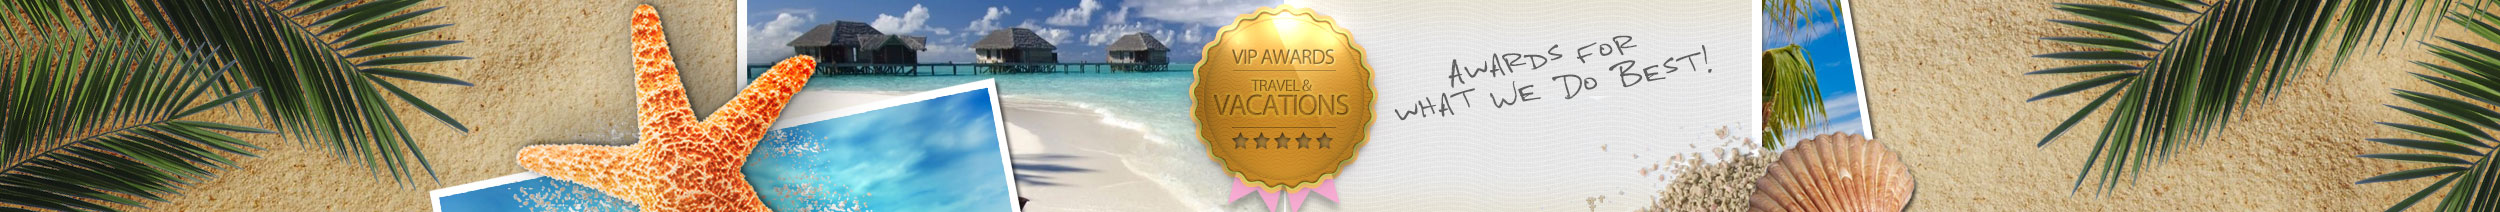 VIP Vacations Agents Get IshqRocks Certified